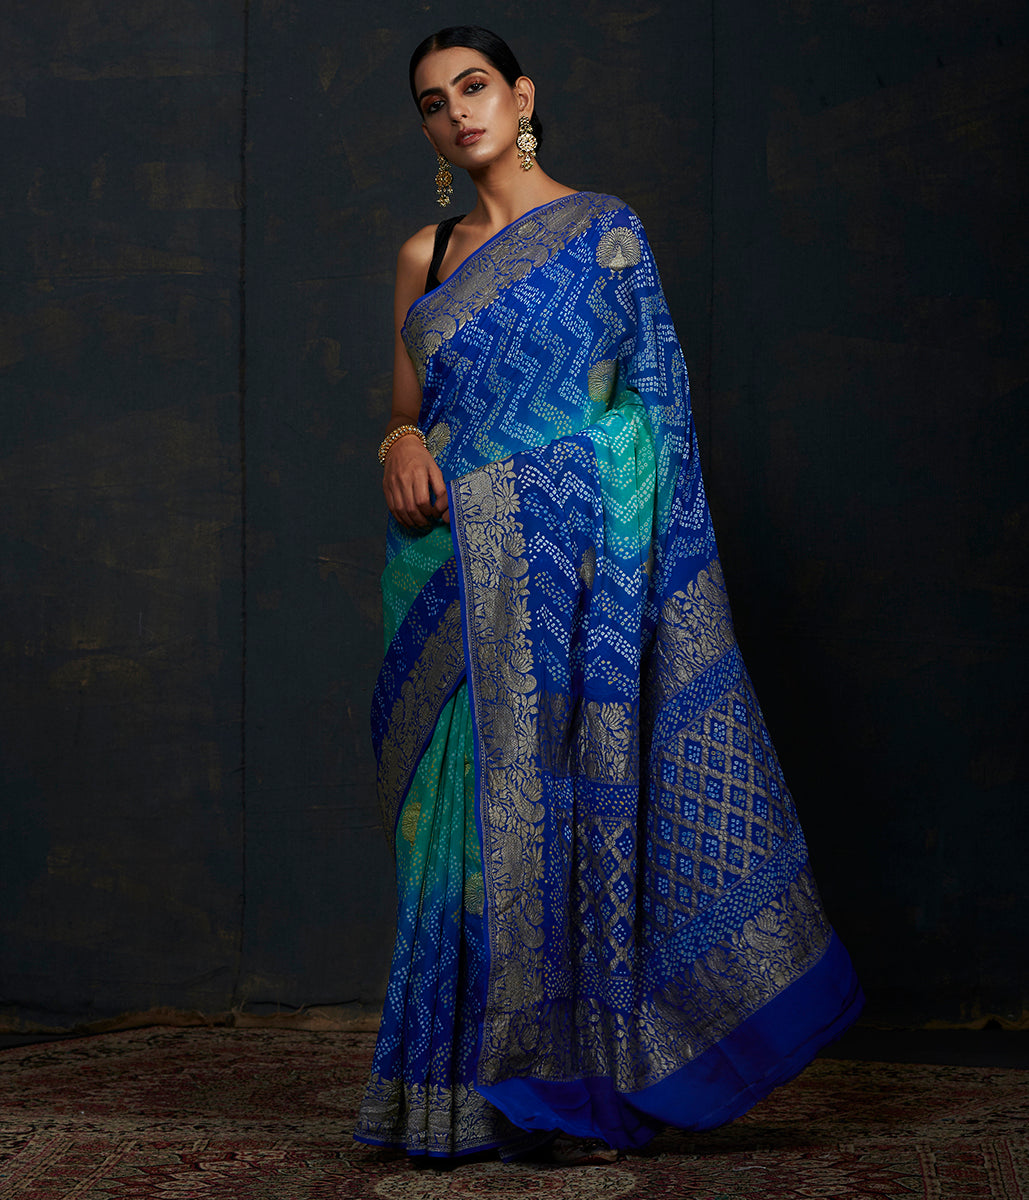 Handwoven Banarasi Bandhej Saree in Royal blue and turquoise ombre dye